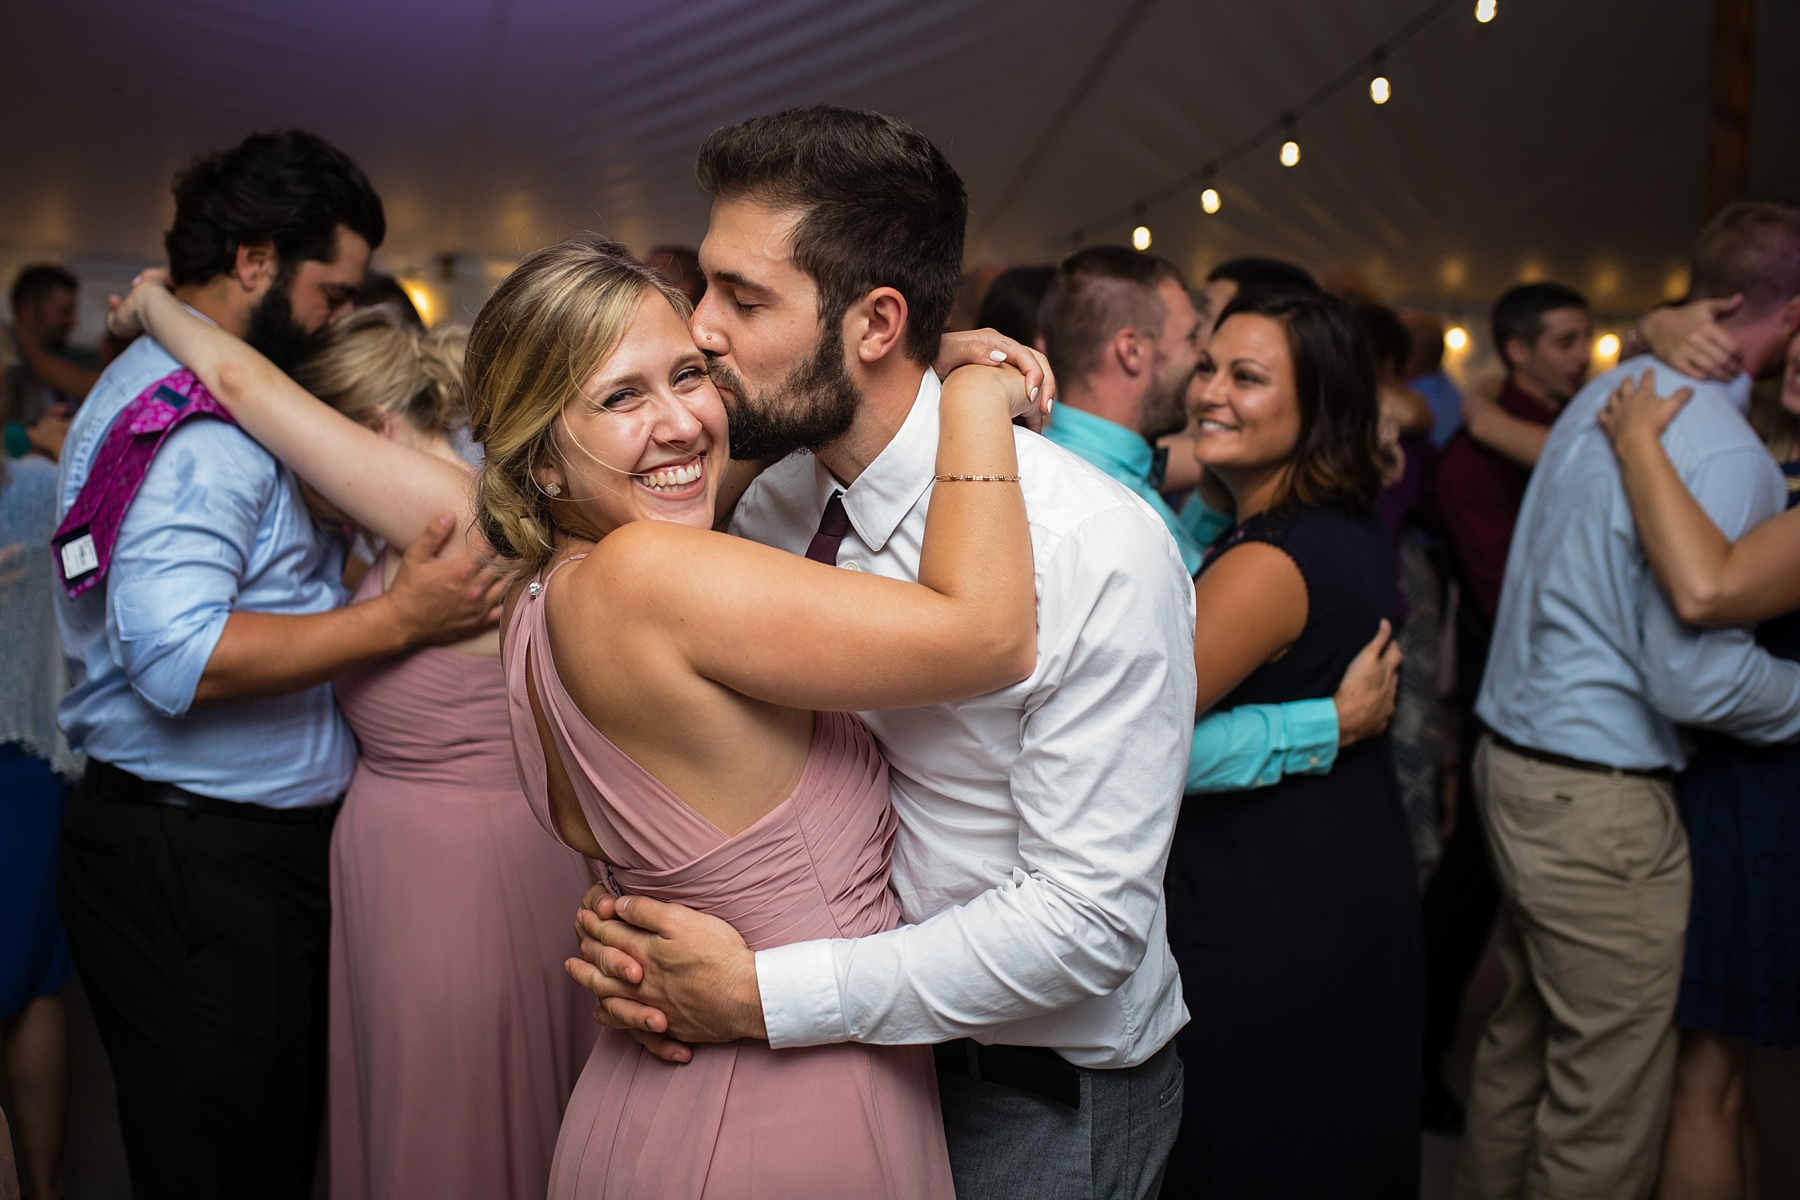 Brandon_Shafer_Photography_Elizabeth_Scott_Traverse_City_Wedding_0059.jpg